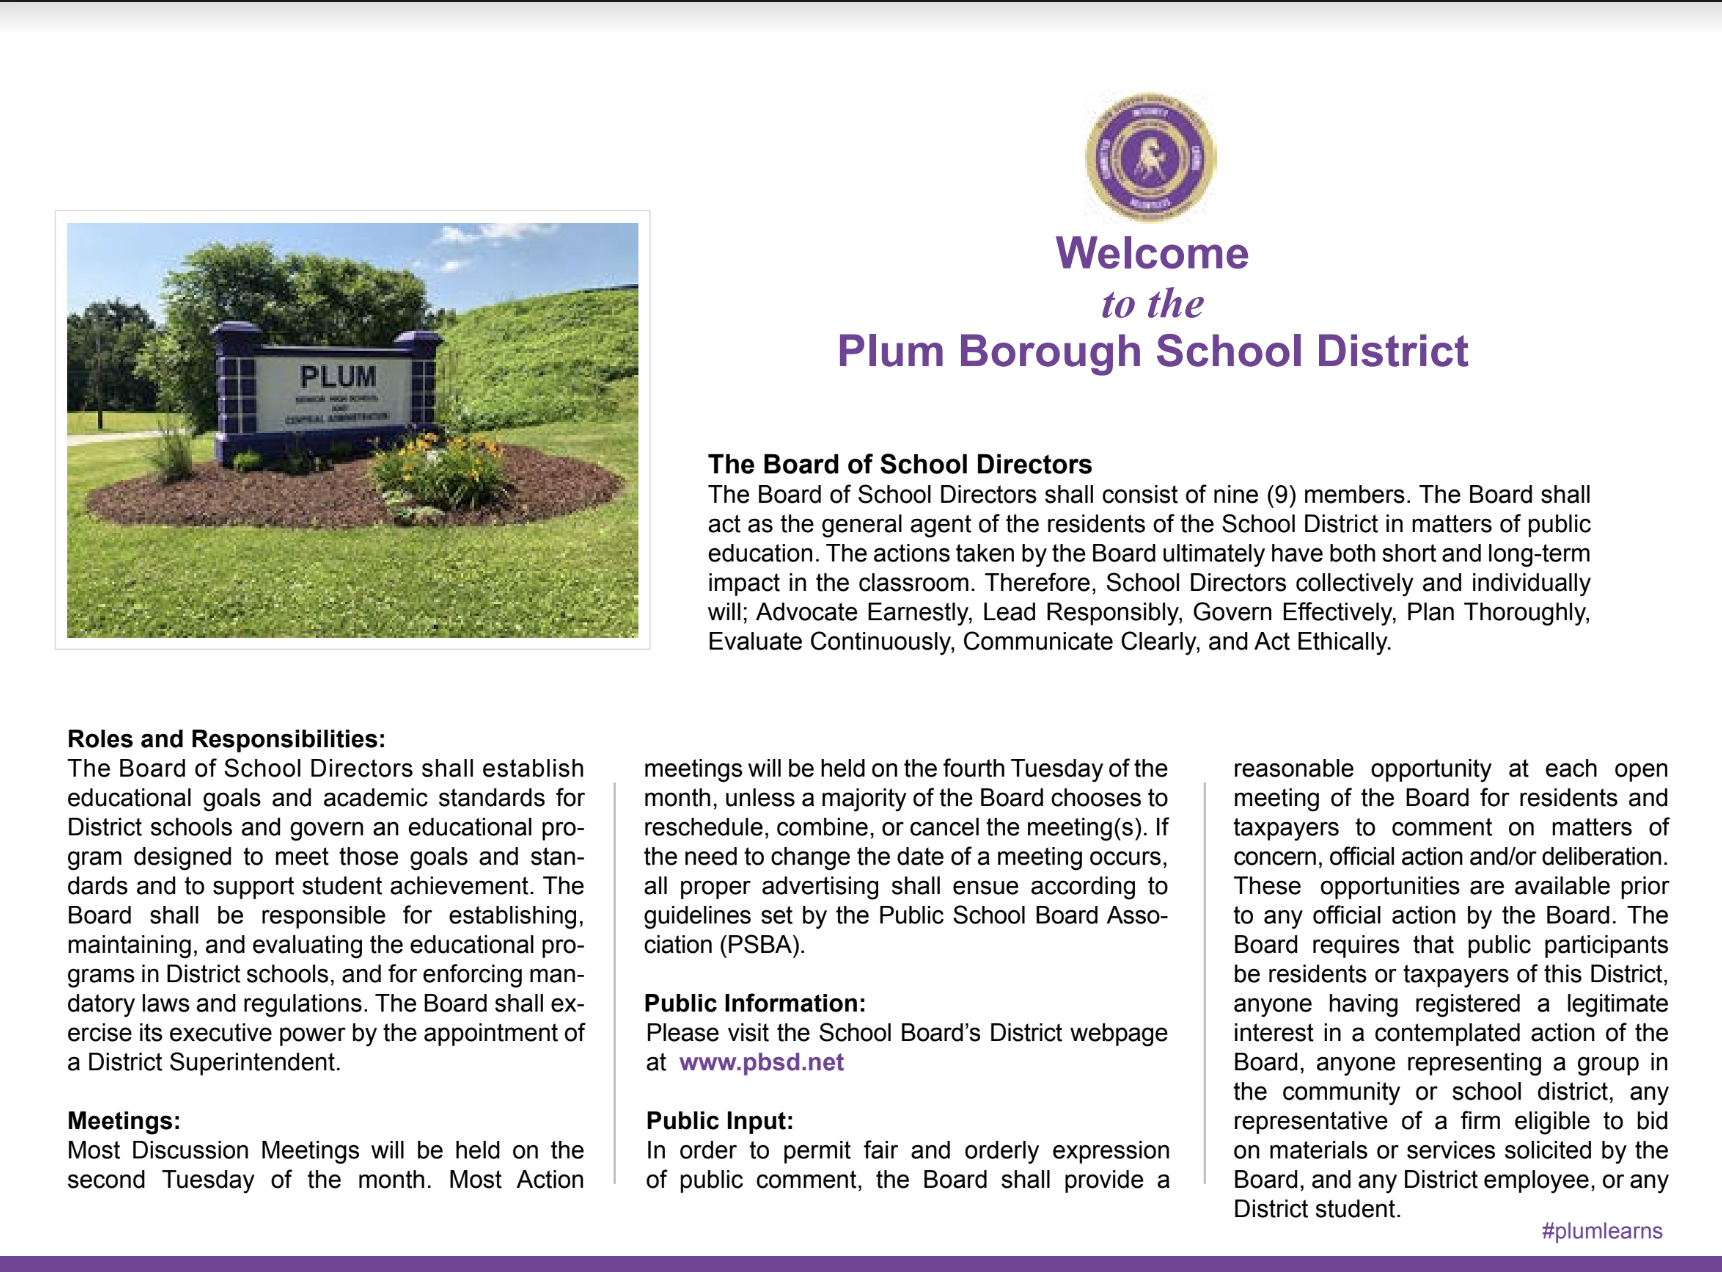 Welcome to the Plum Borough School District. The Board of School Directors shall consist of non(9) members. The Board shall act as s the general agent of the residents of the School District in matters of public education. The actions taken by the Boat ultimately have both short and Lon-teerrm impact in the classroom. Therefore, School Directors collectively and individually will; Advocate Earnestly, Lead Responsibly, Govern Effectively, Plan Thoroughly, Evaluate Continuously, Communicate Clearly, and Act Ethically.